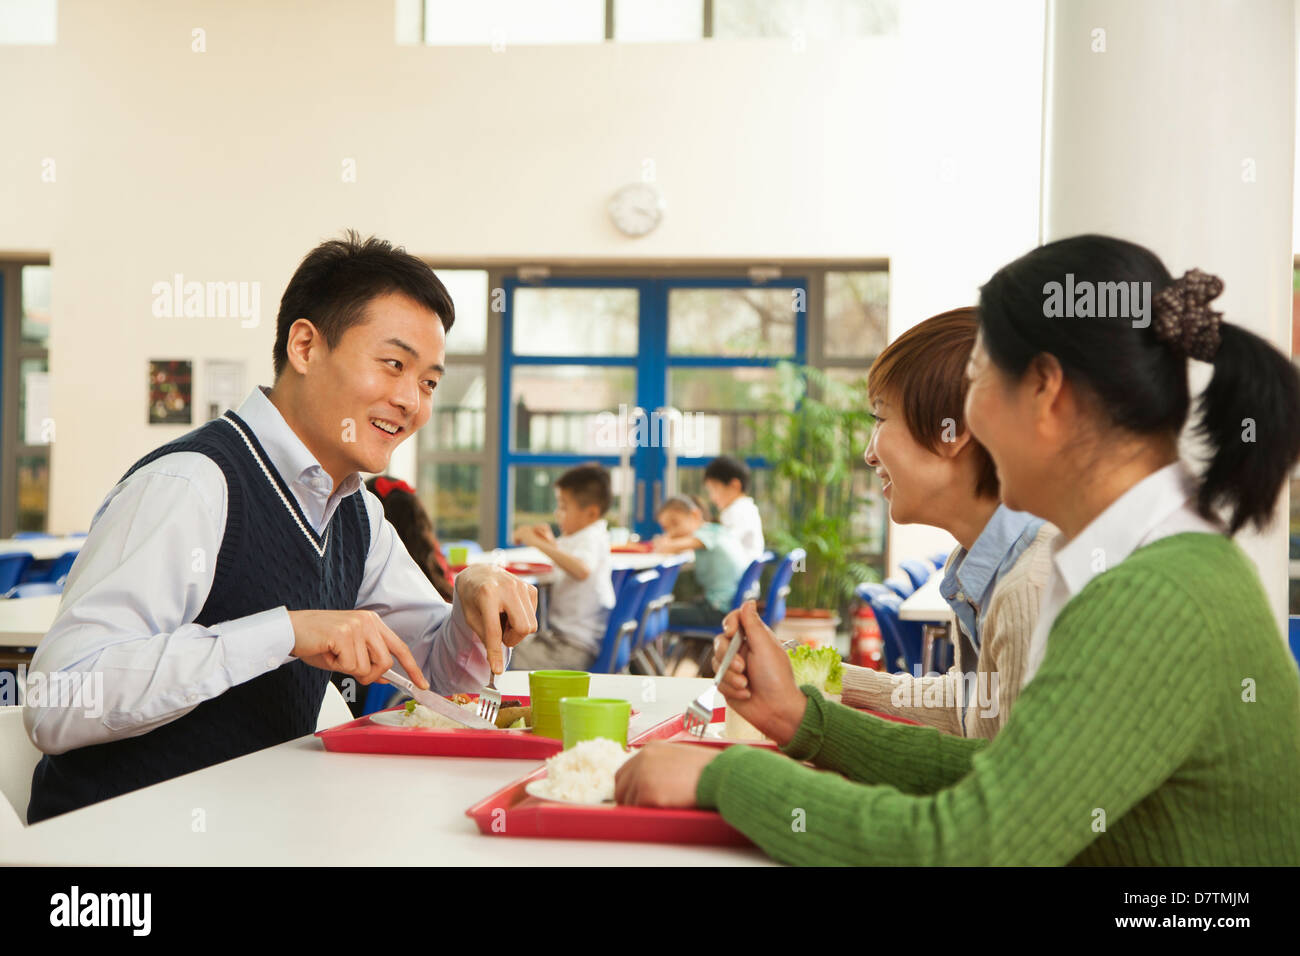 Teachers talking at lunch in school cafeteria - Stock Image